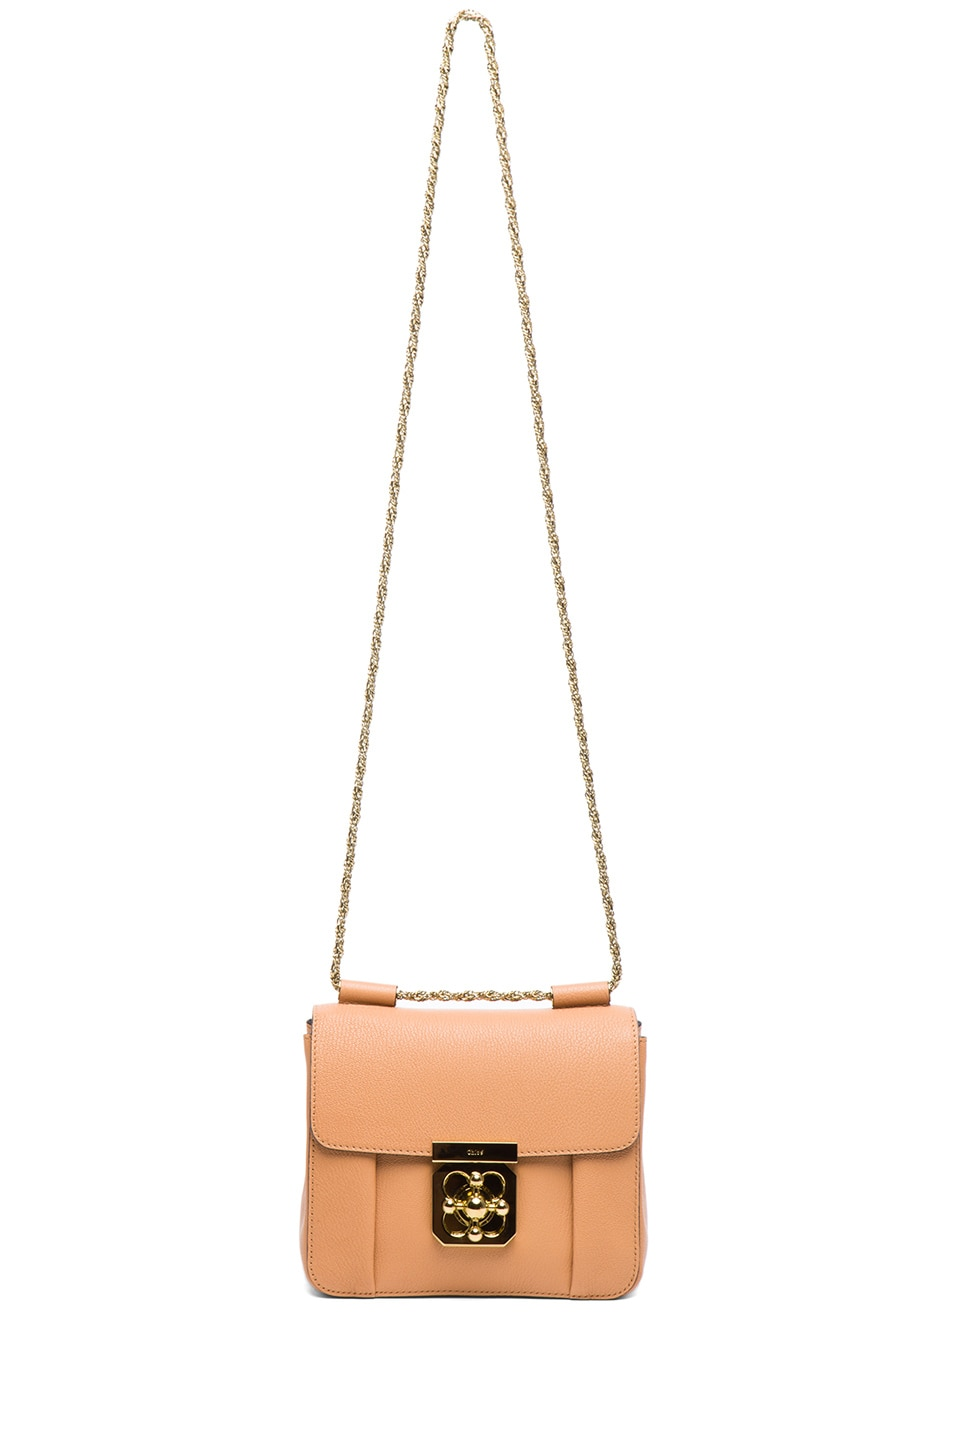 Image 6 of Chloe Small Elsie Shoulder Bag in Rose Milk